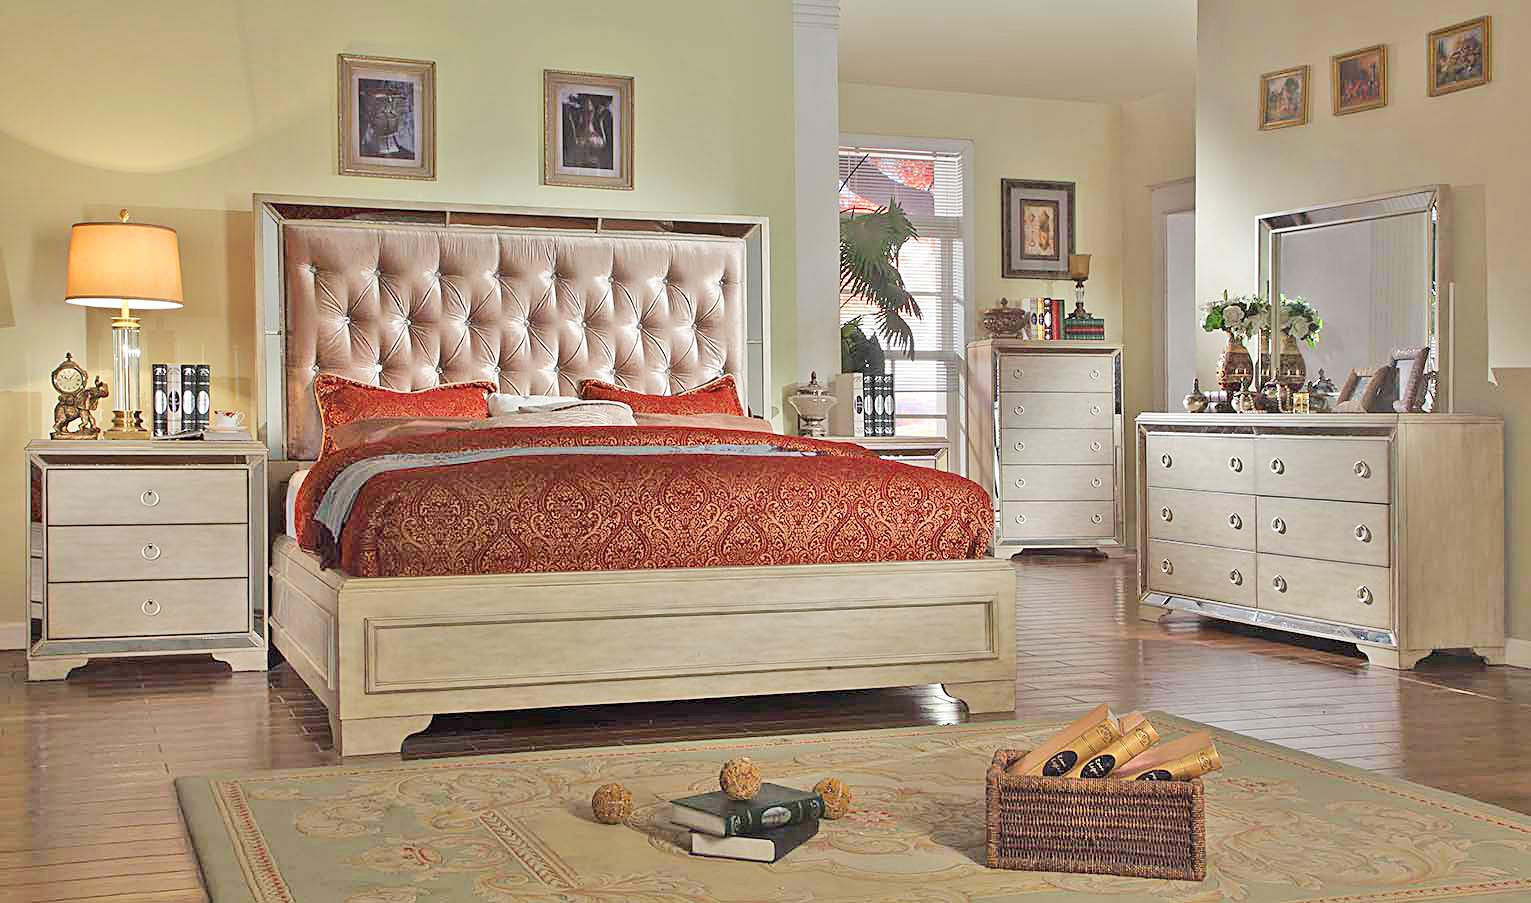 Del Sol Exclusive B9805 Queen Size Bedroom Group 1 - Item Number: B9805-4Q